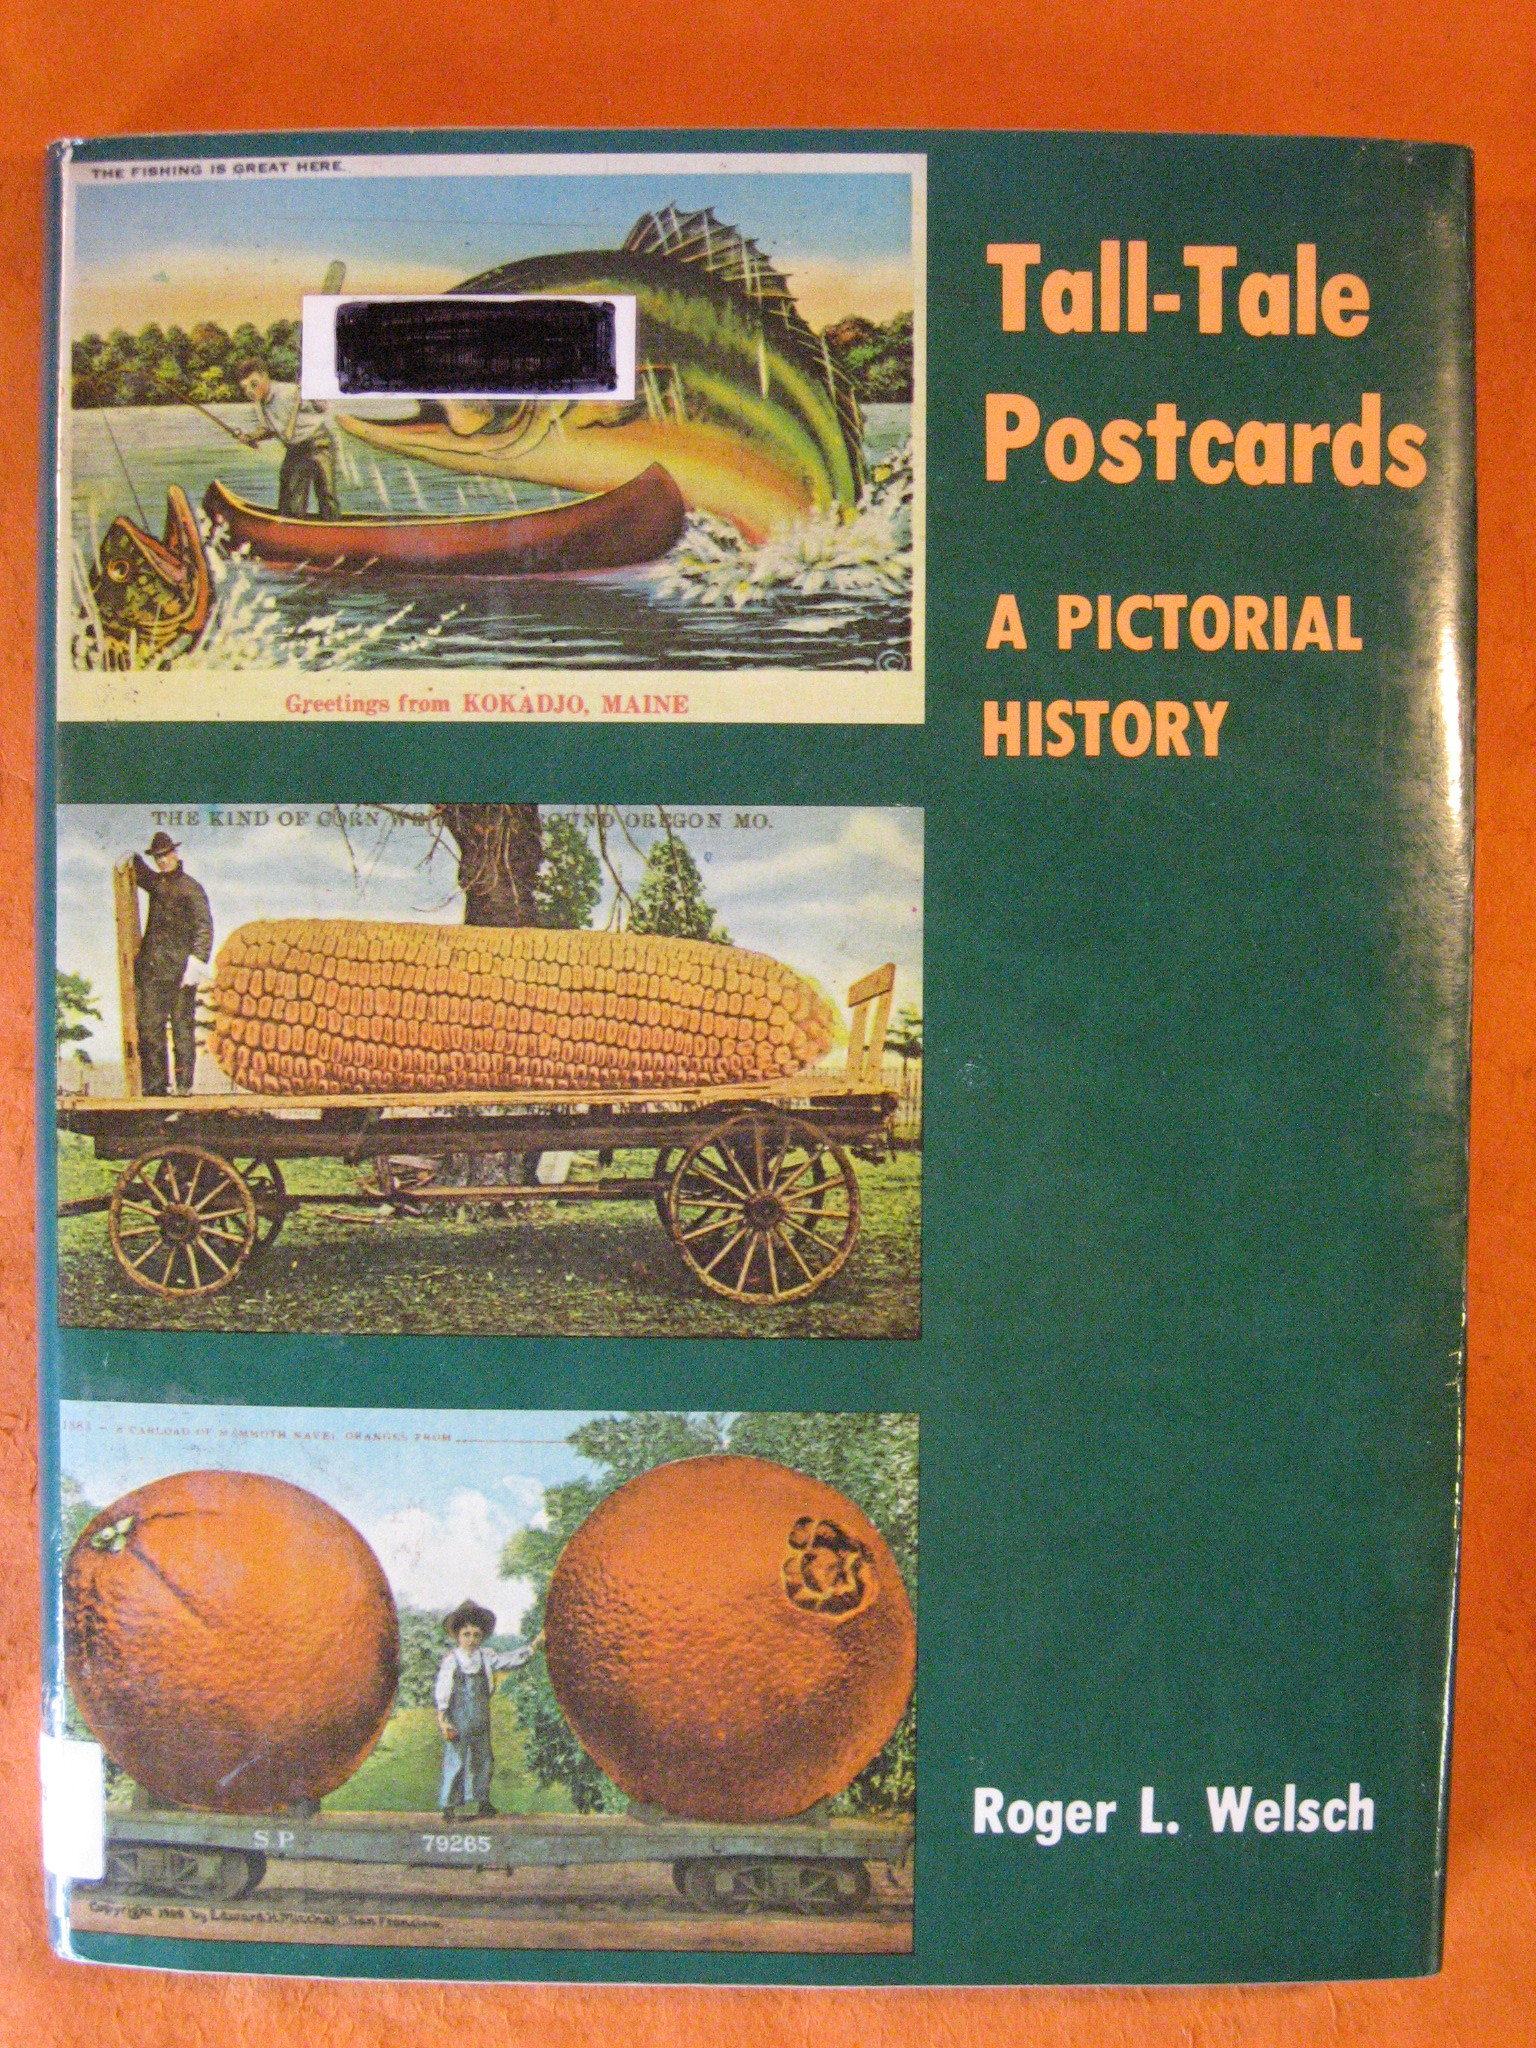 Tall-tale postcards: A Pictorial History, Welsch, Roger L